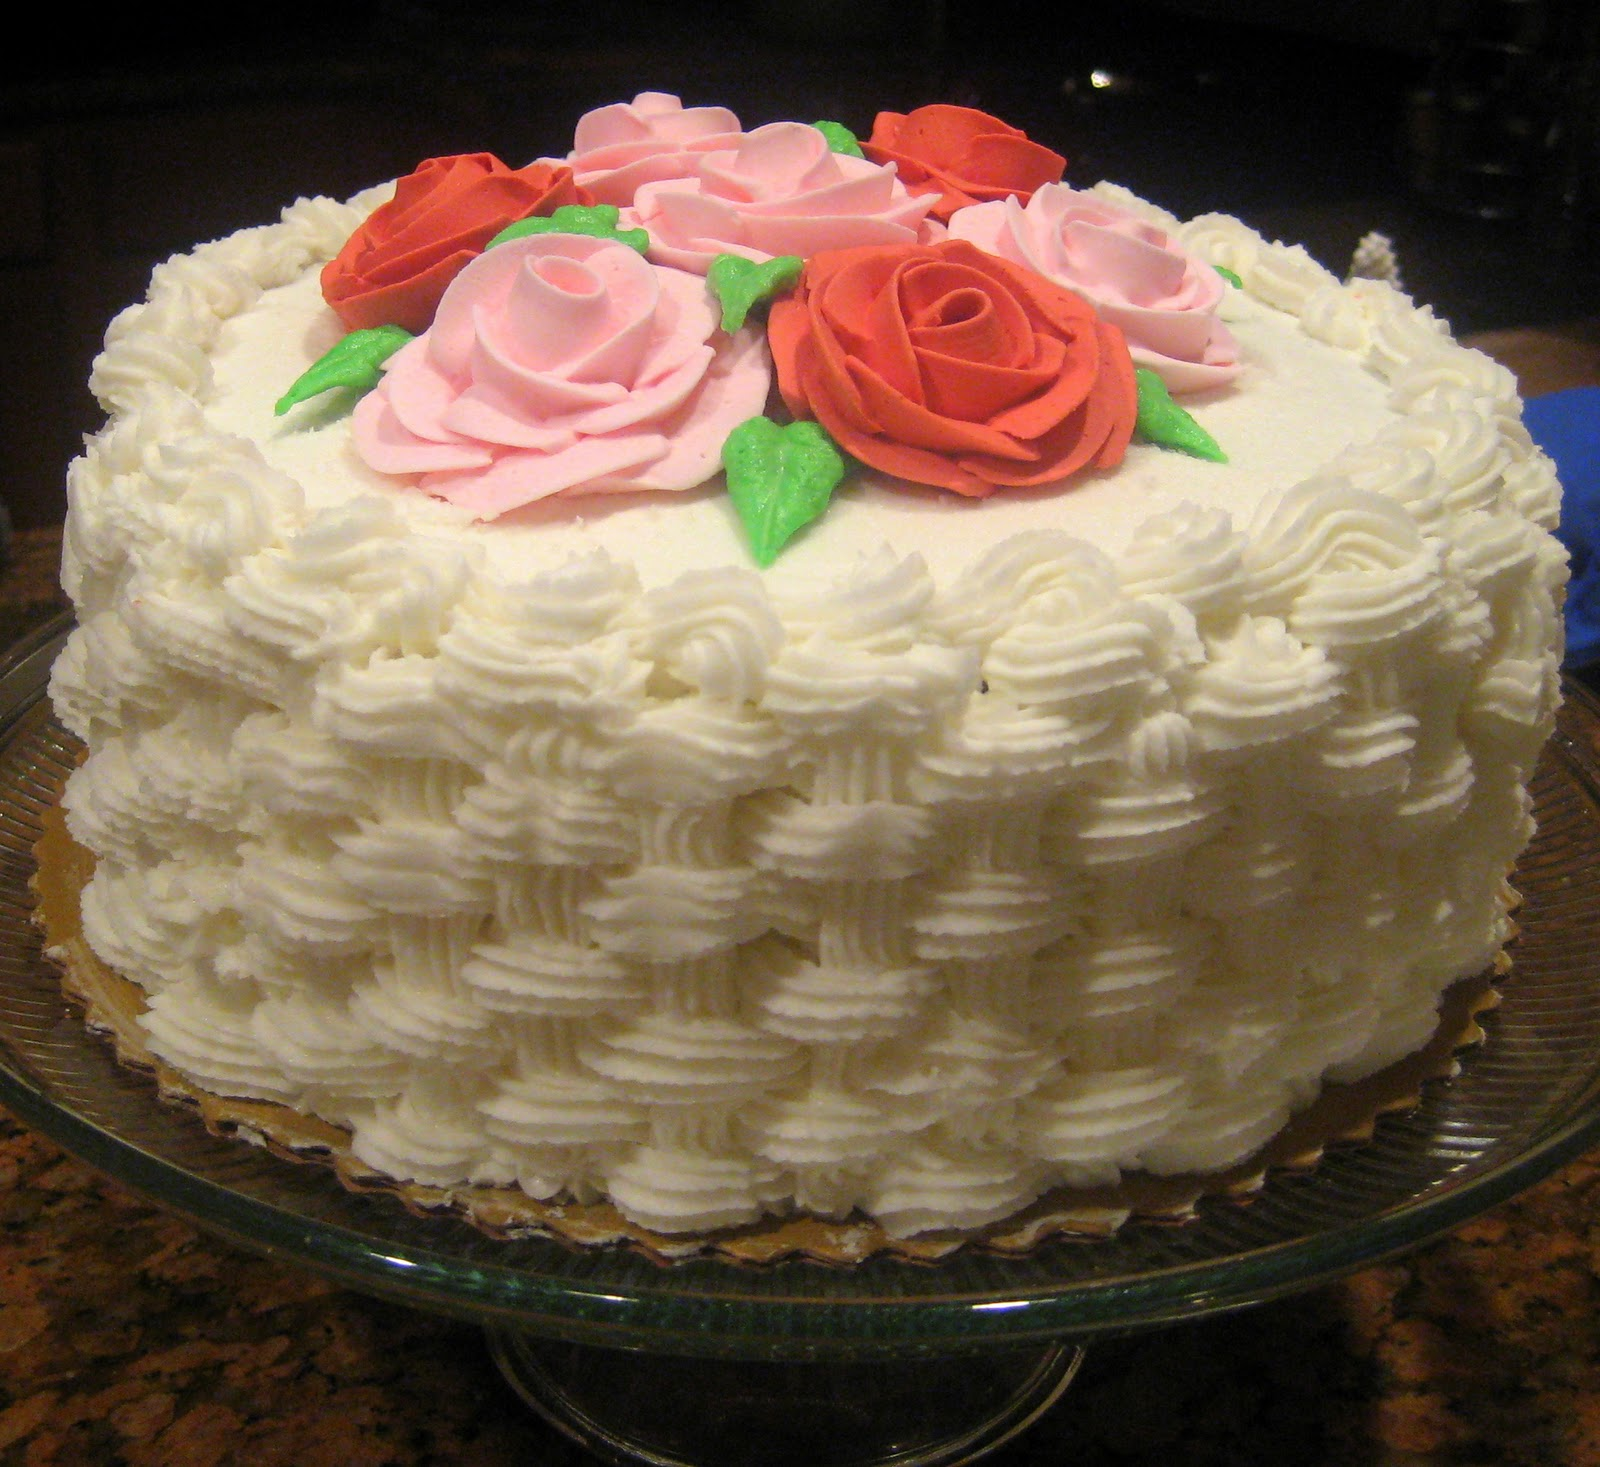 Homemade Cake Icing Designs : Sweet for Sirten: Wilton Flowers and Cake Design Final Cake